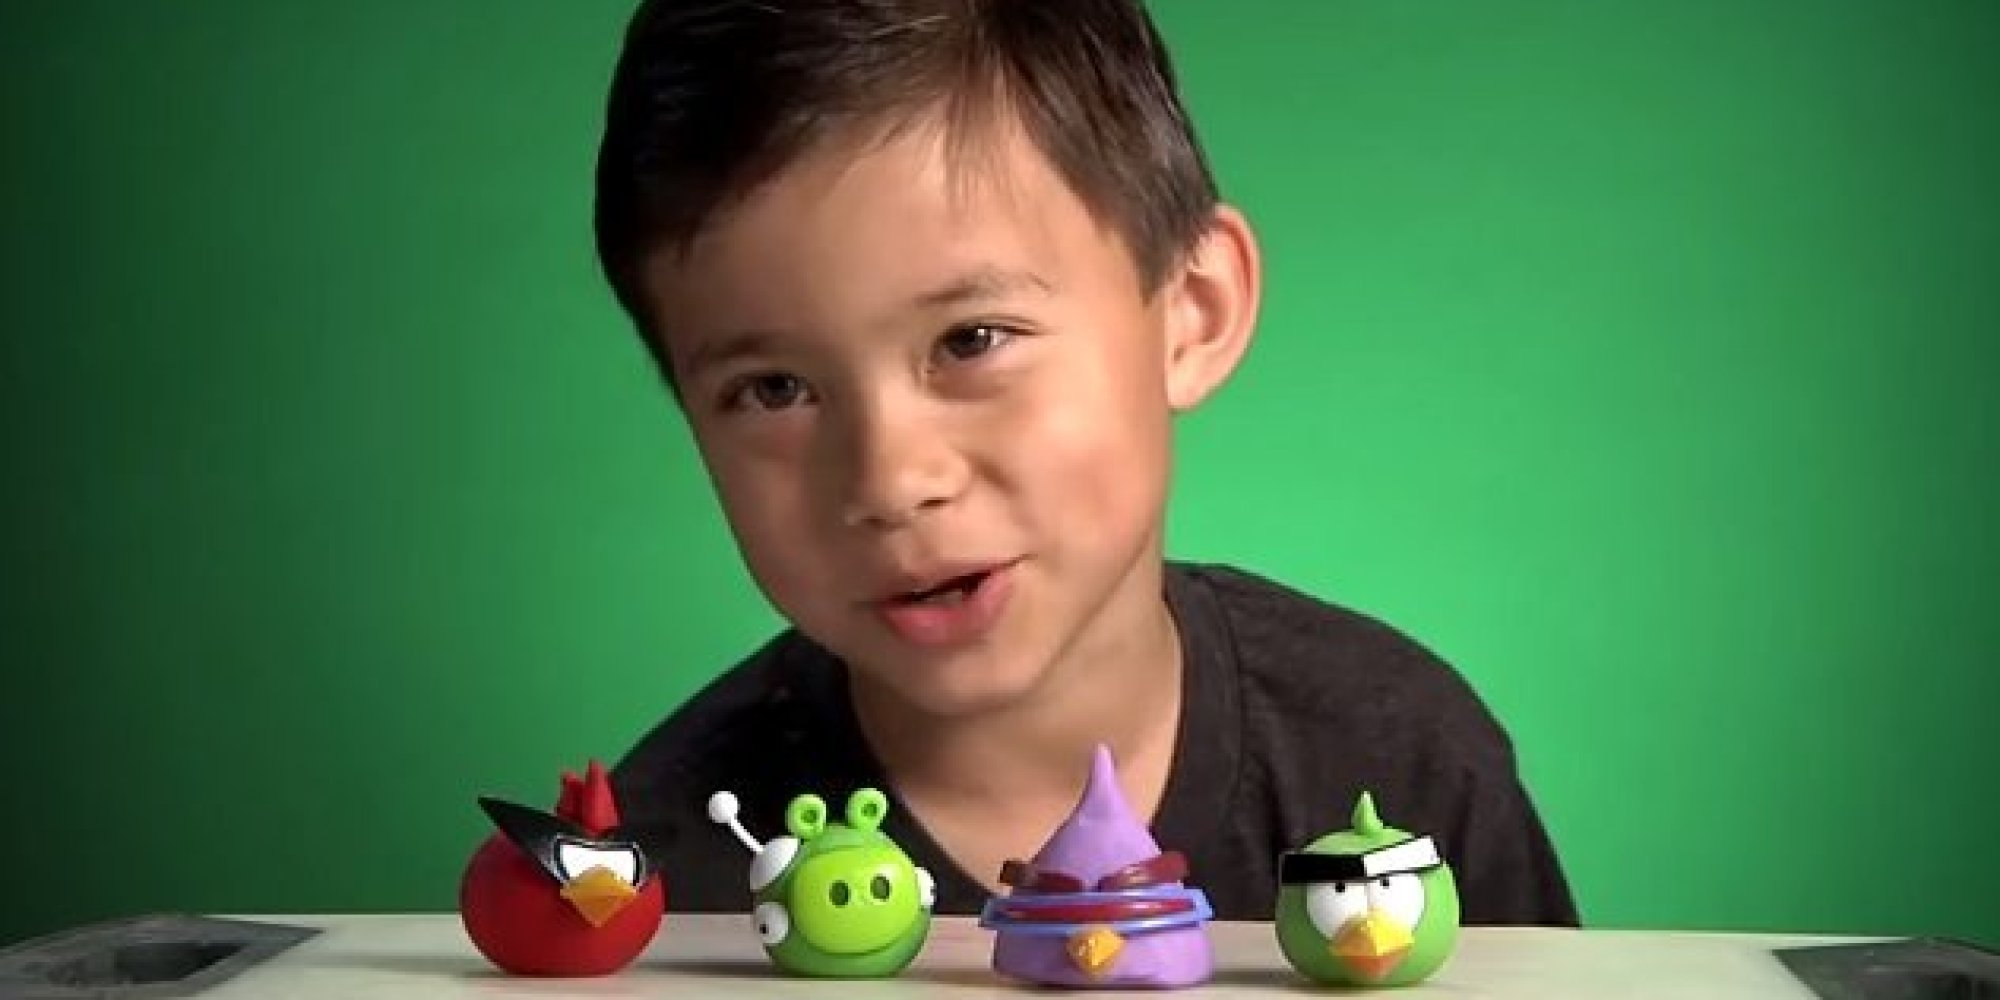 8 Year Old Kid Makes 1 3 Million A Year With His Viral